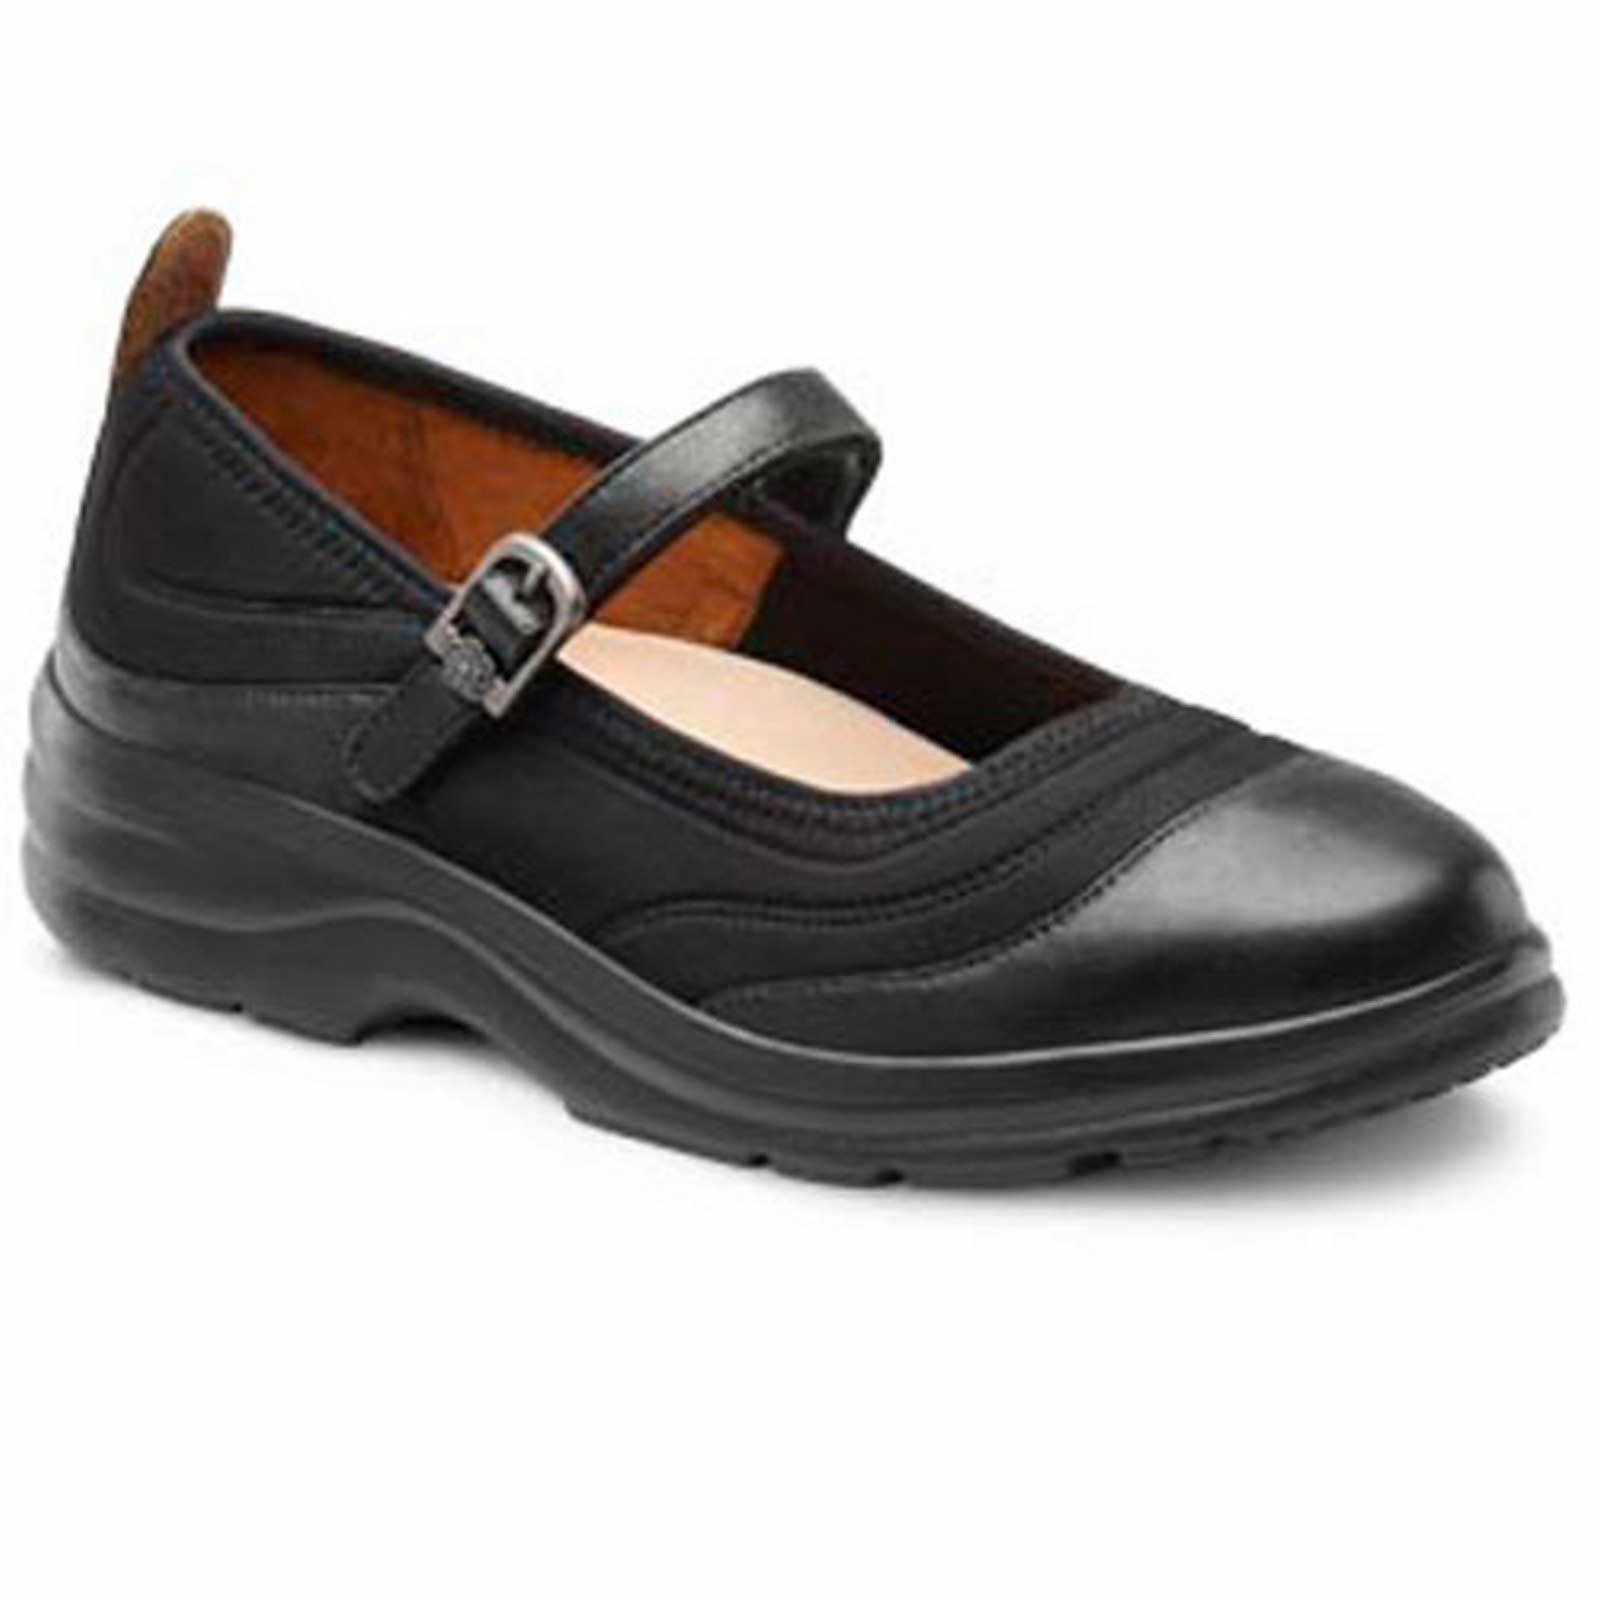 Dr Comfort Shoes - Flute - Women's Therapeutic Diabetic Shoe with Gel Plus Inserts - Casual, Dress - Medium (A-B) - Extra Wide ( at Sears.com